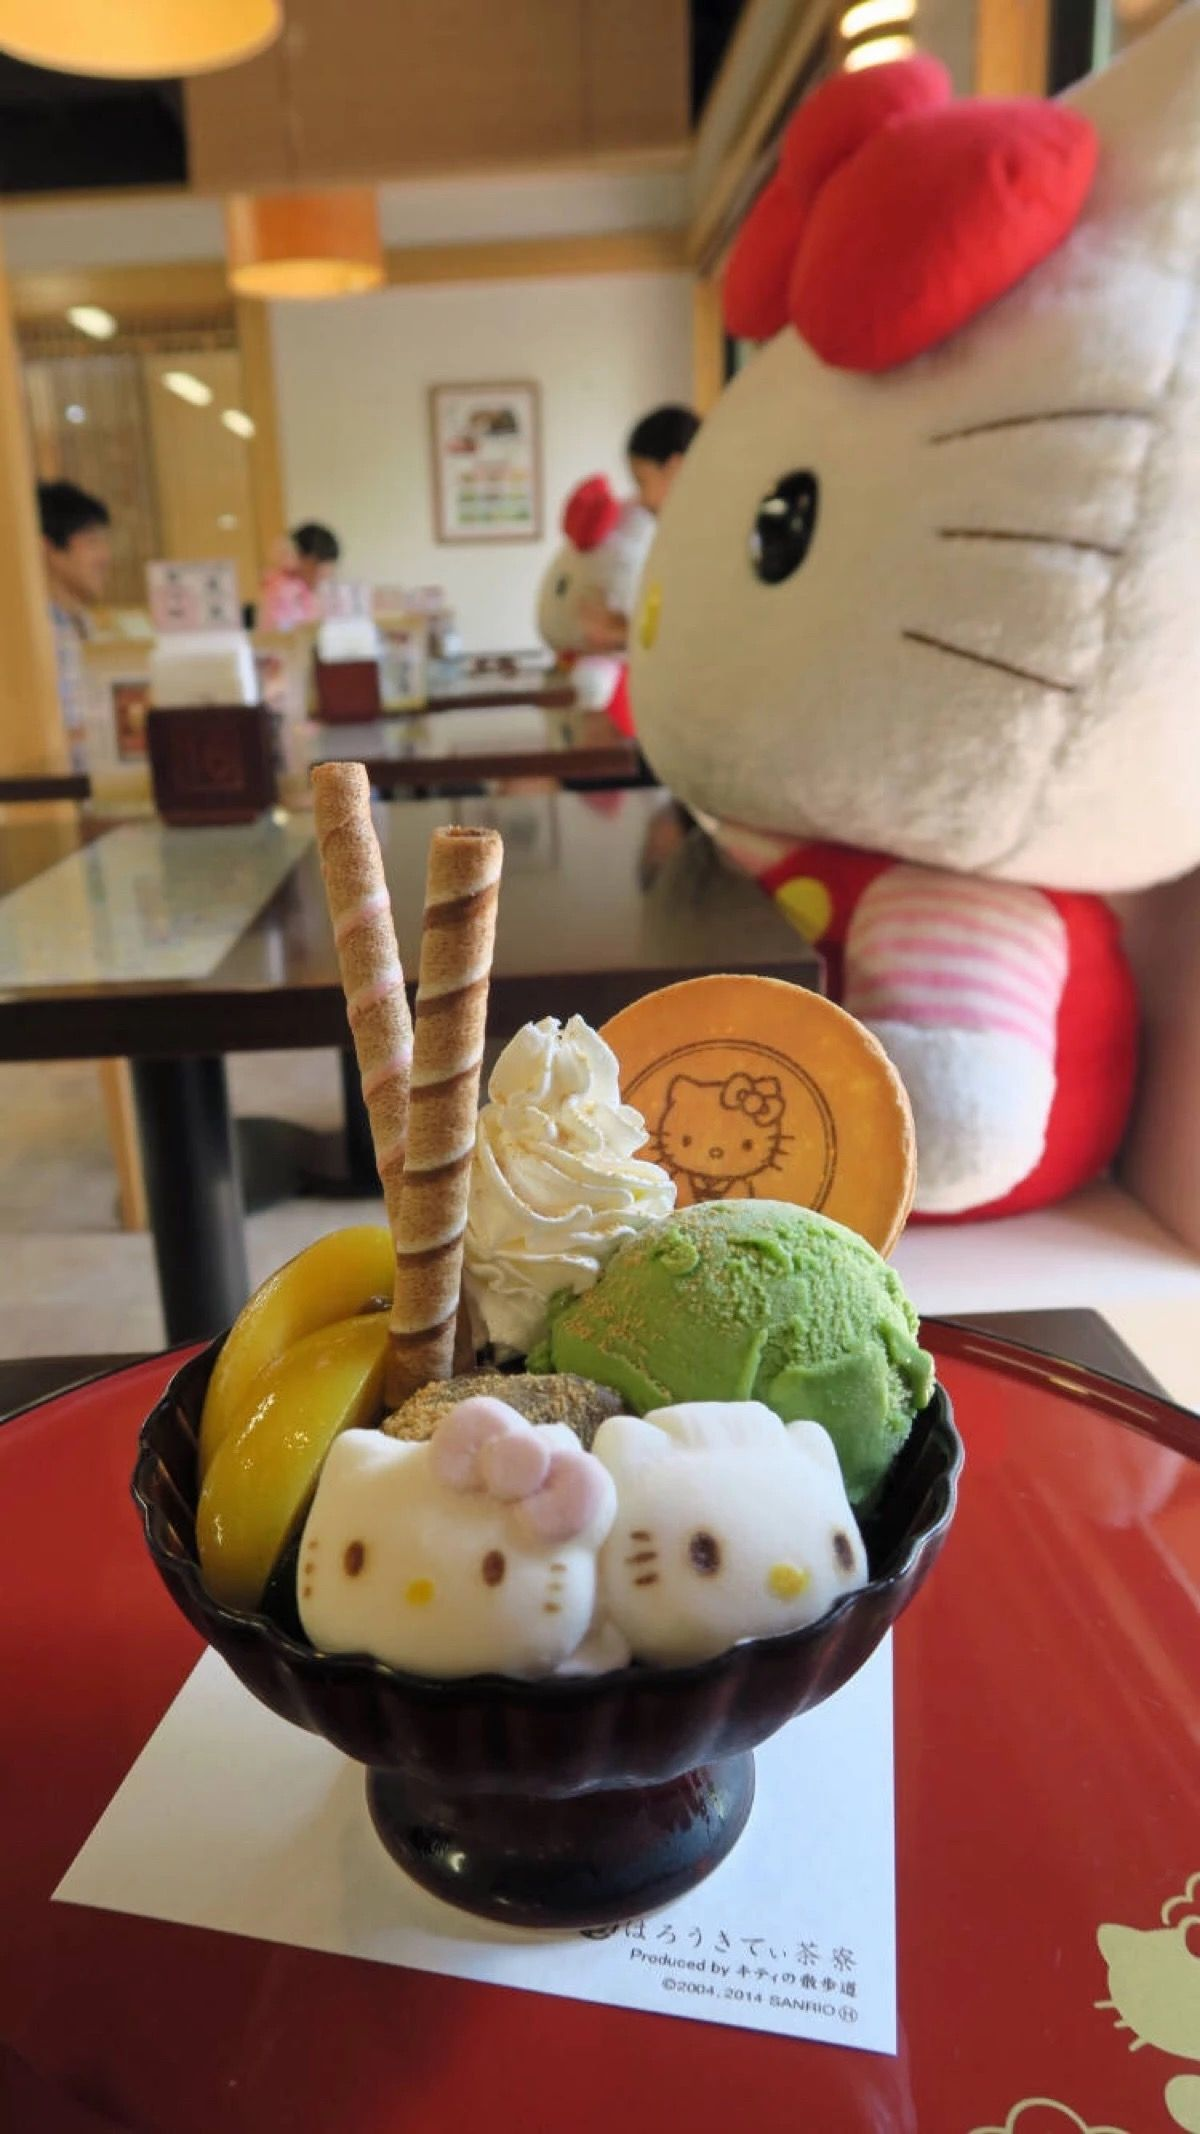 #Estellaseraphim #Hellokitty #Icecream #Yummy